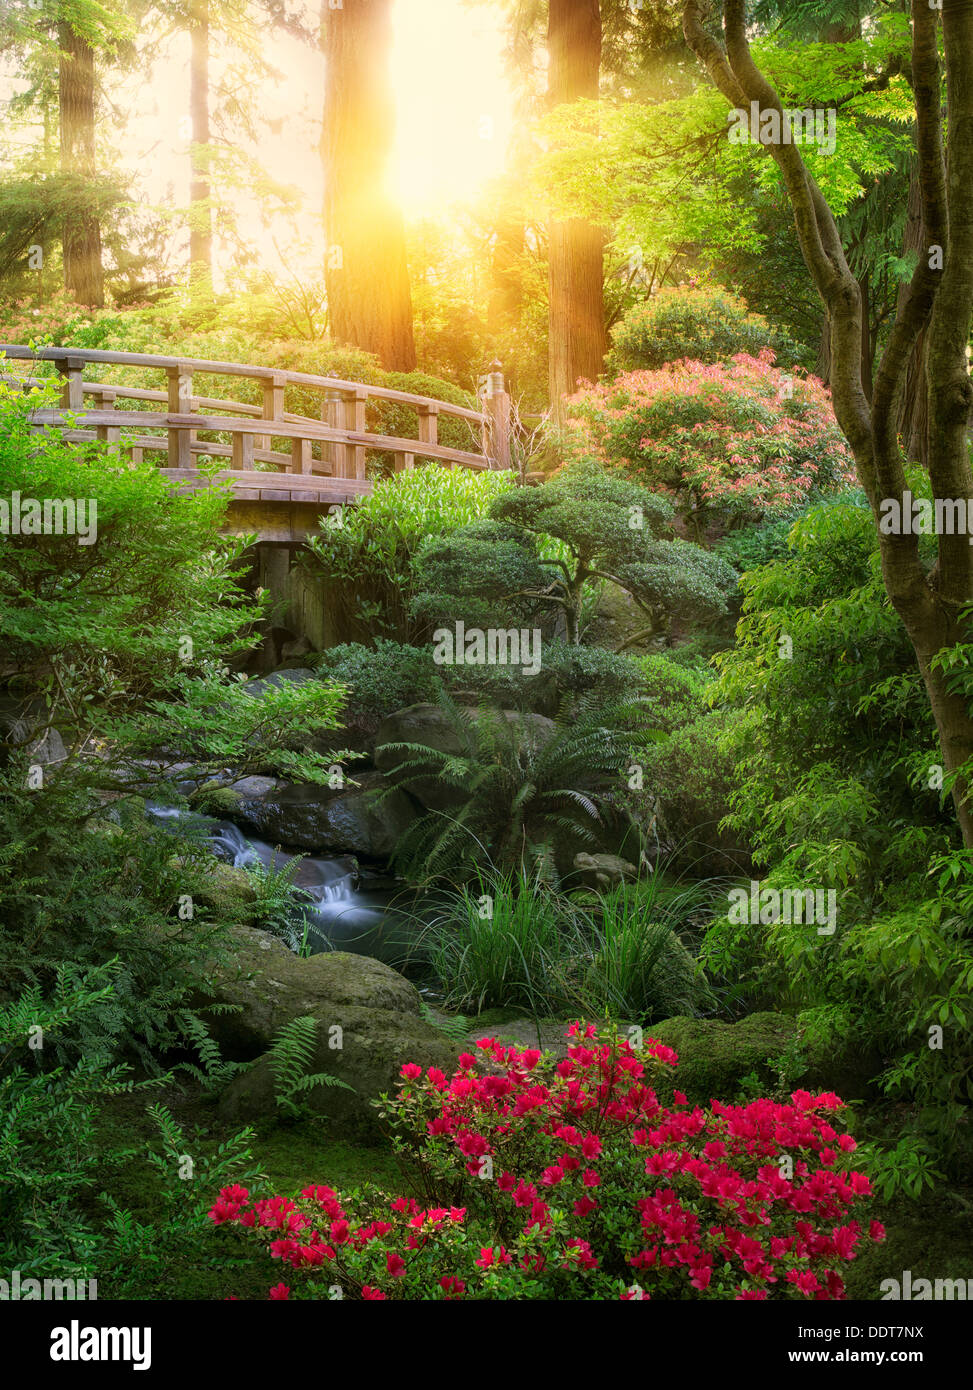 Bridge, stream and blooming Rhododendron. Portland Japanese Garden, Oregon - Stock Image